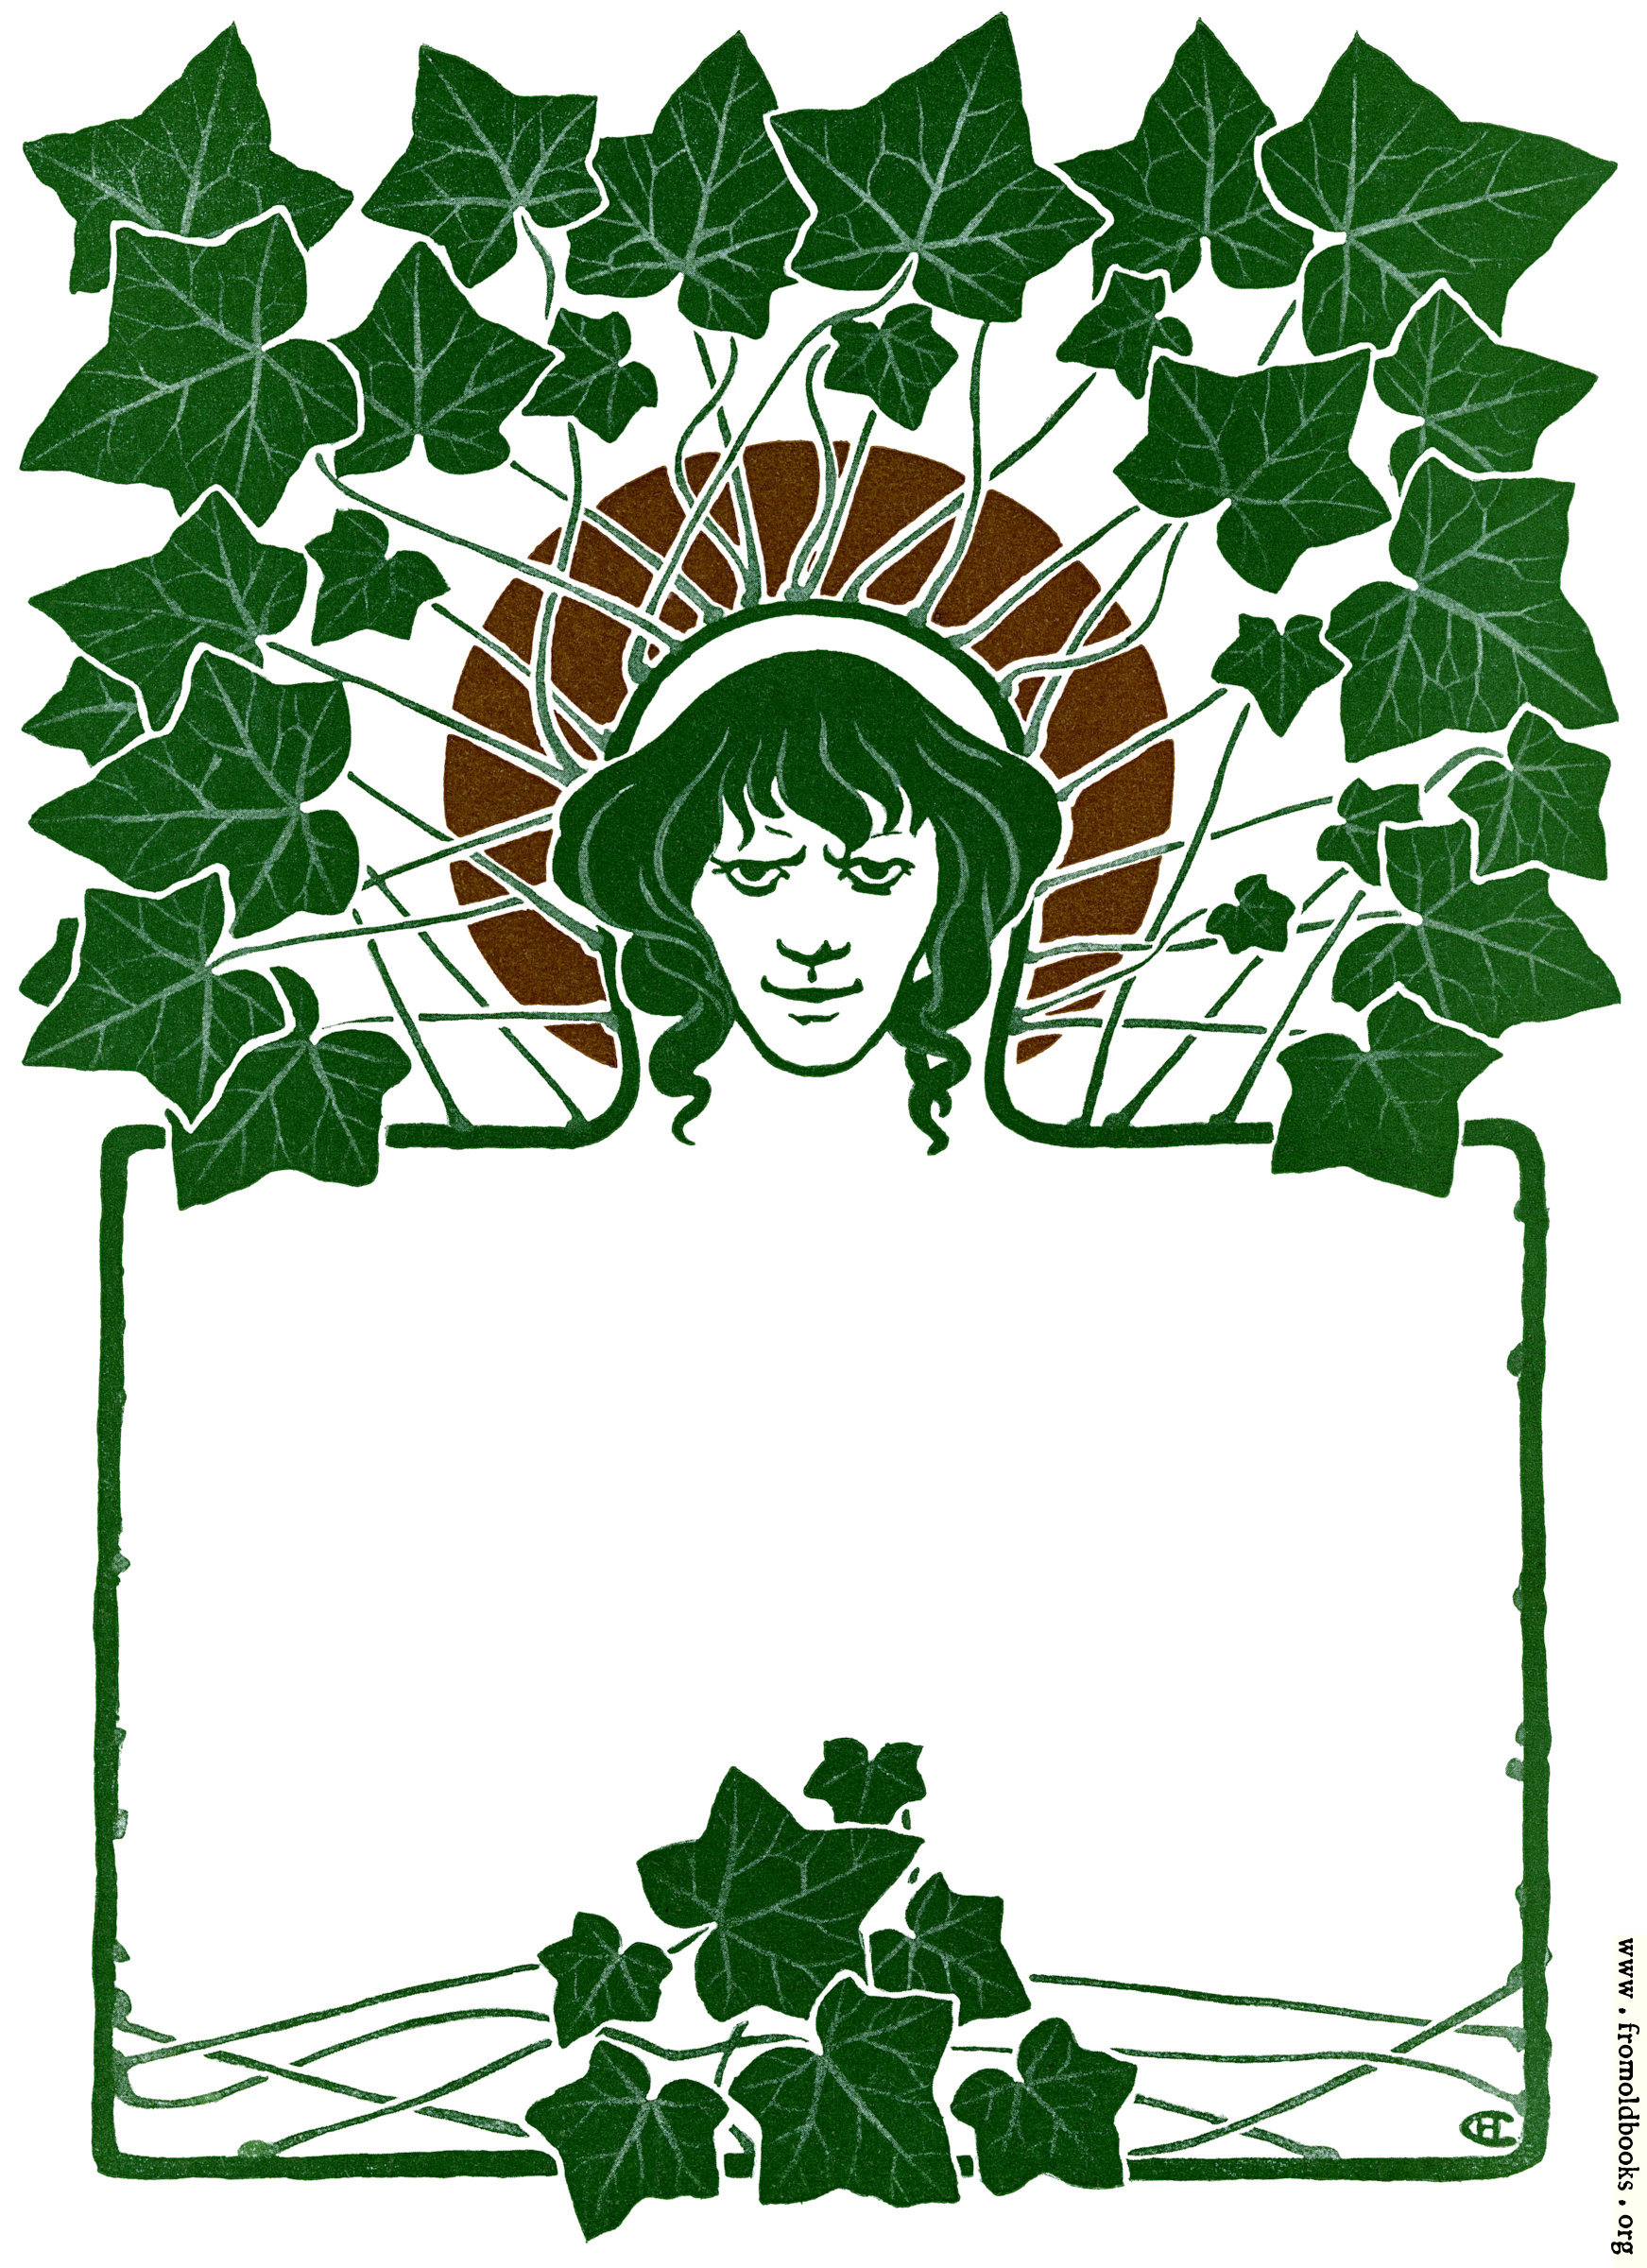 [Picture: Art Nouveau Border with ivey leaves and face.]